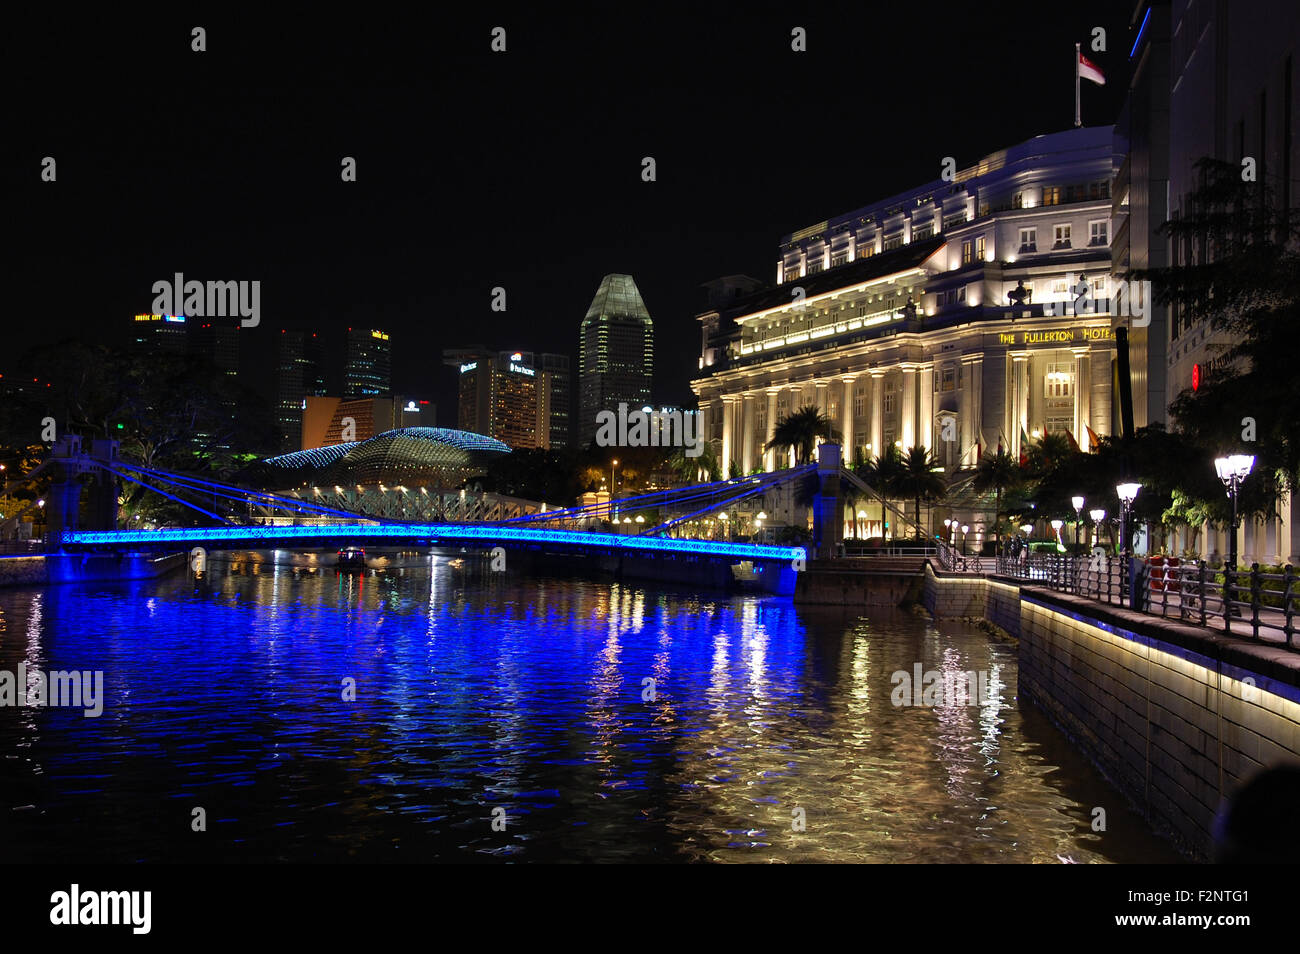 Night with a blue illuminated Cavenagh Bridge spanning the Singapore River and the Fullerton Hotel in Singapore. - Stock Image